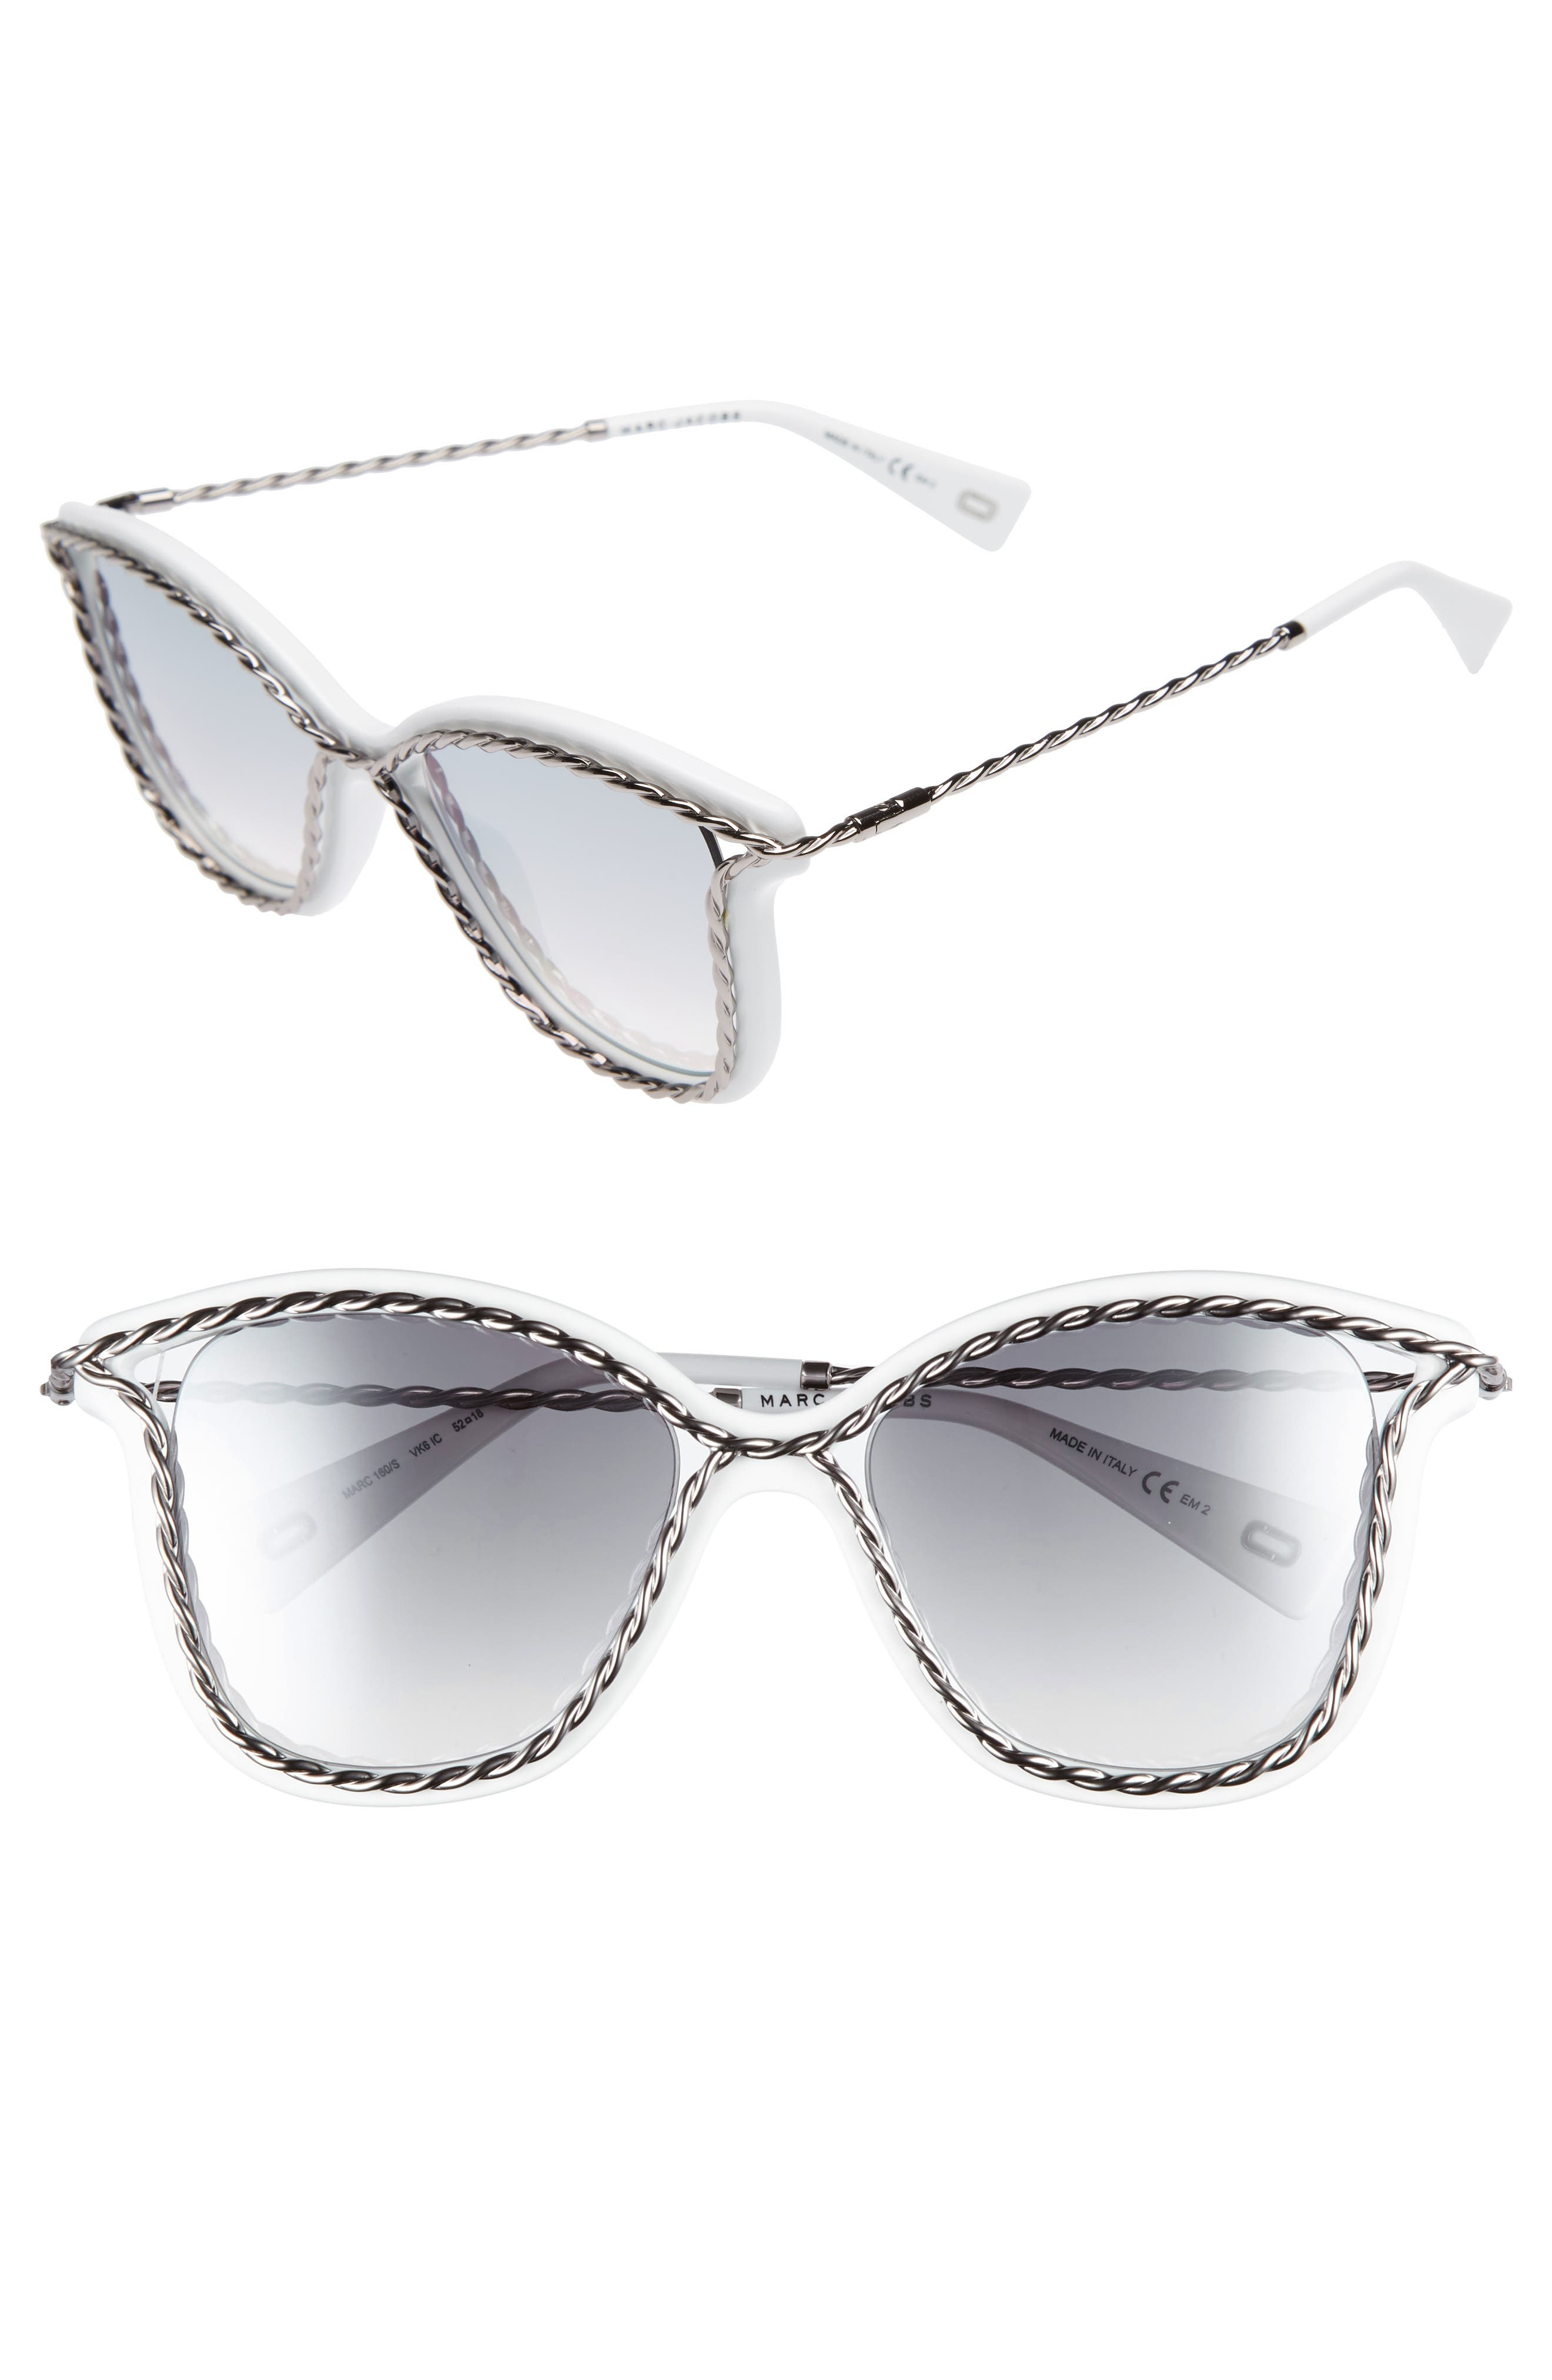 Main Image - MARC JACOBS 52mm Cat Eye Sunglasses